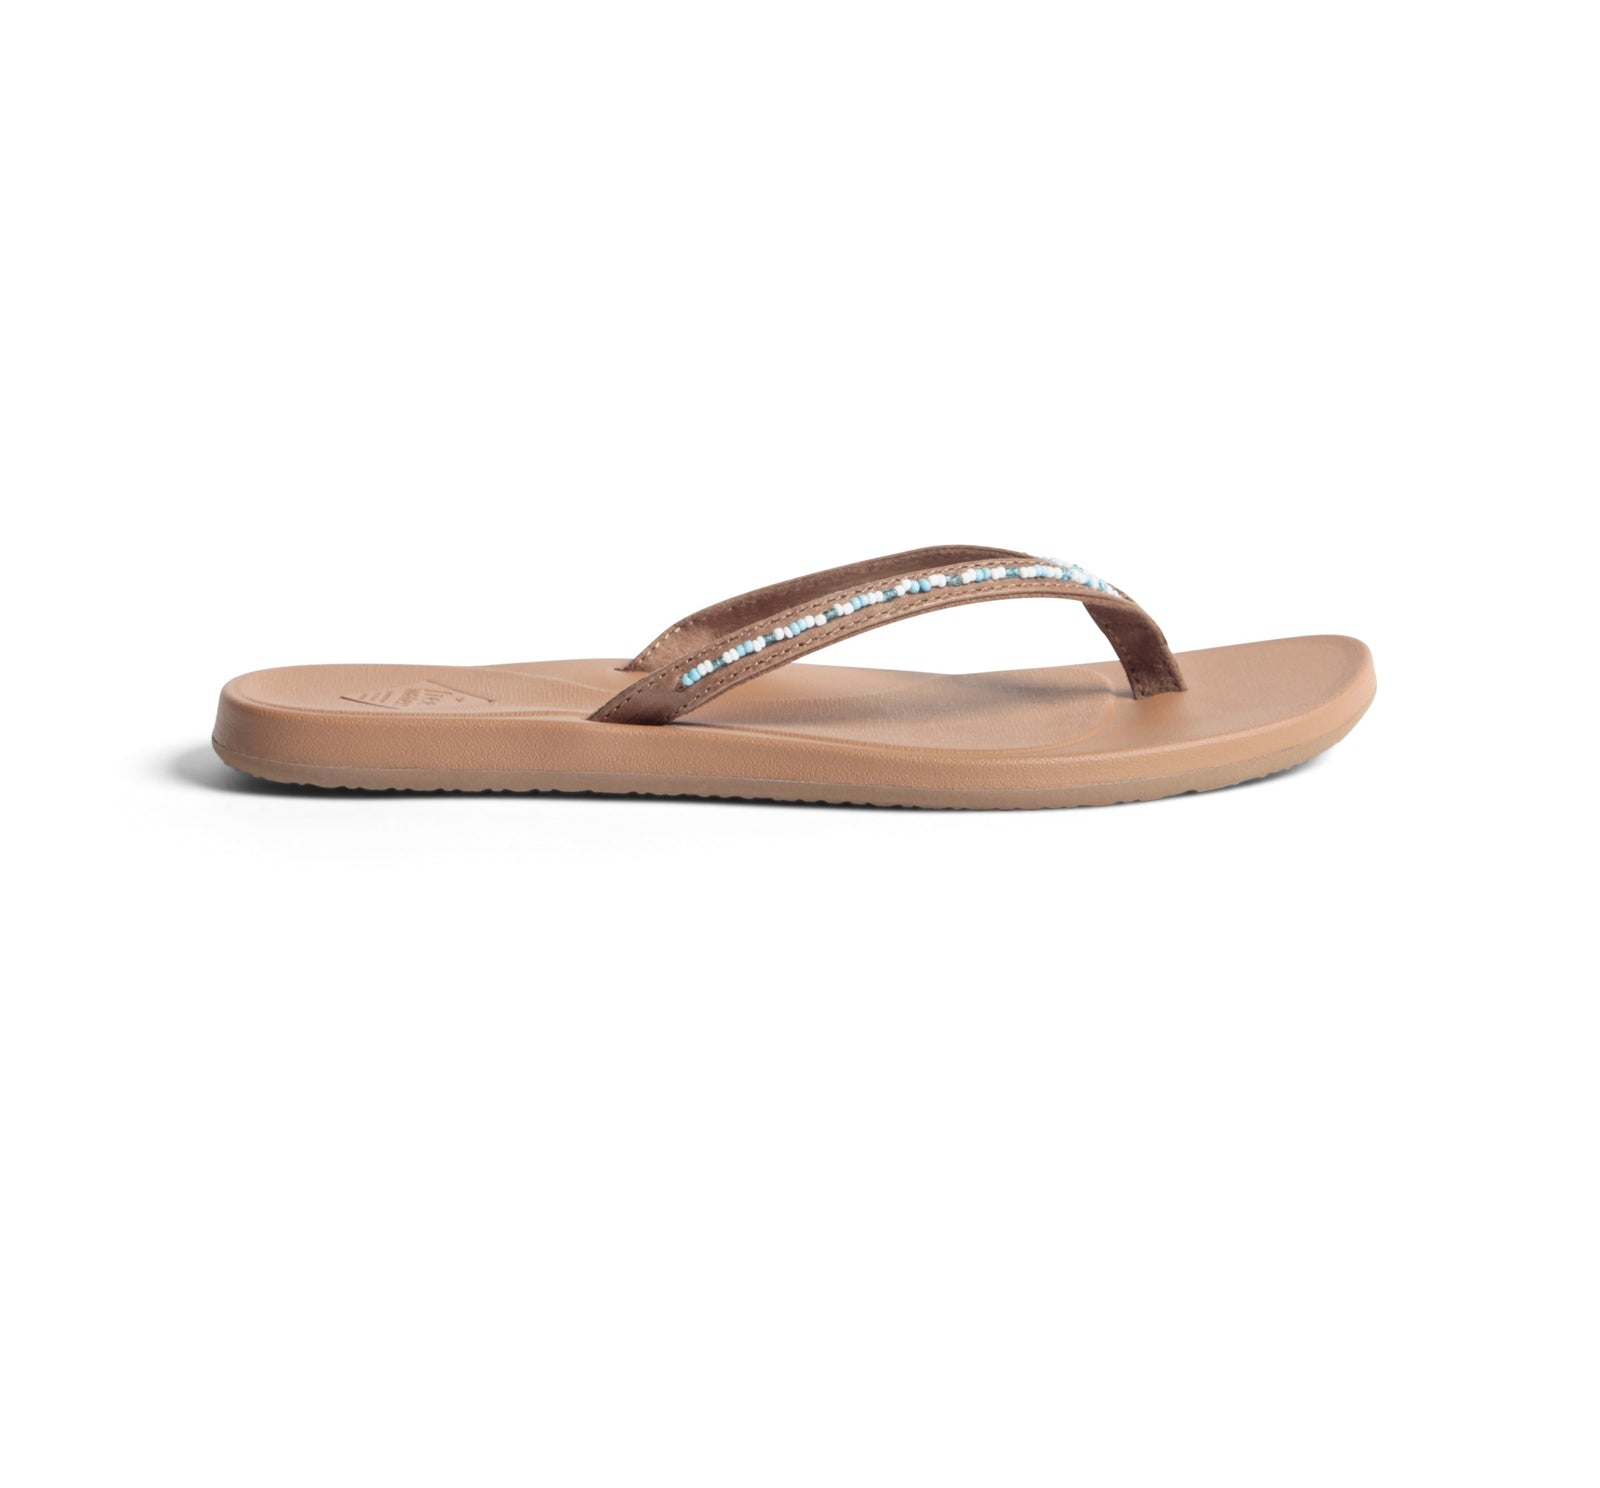 Freewaters Indio Women's Sandals